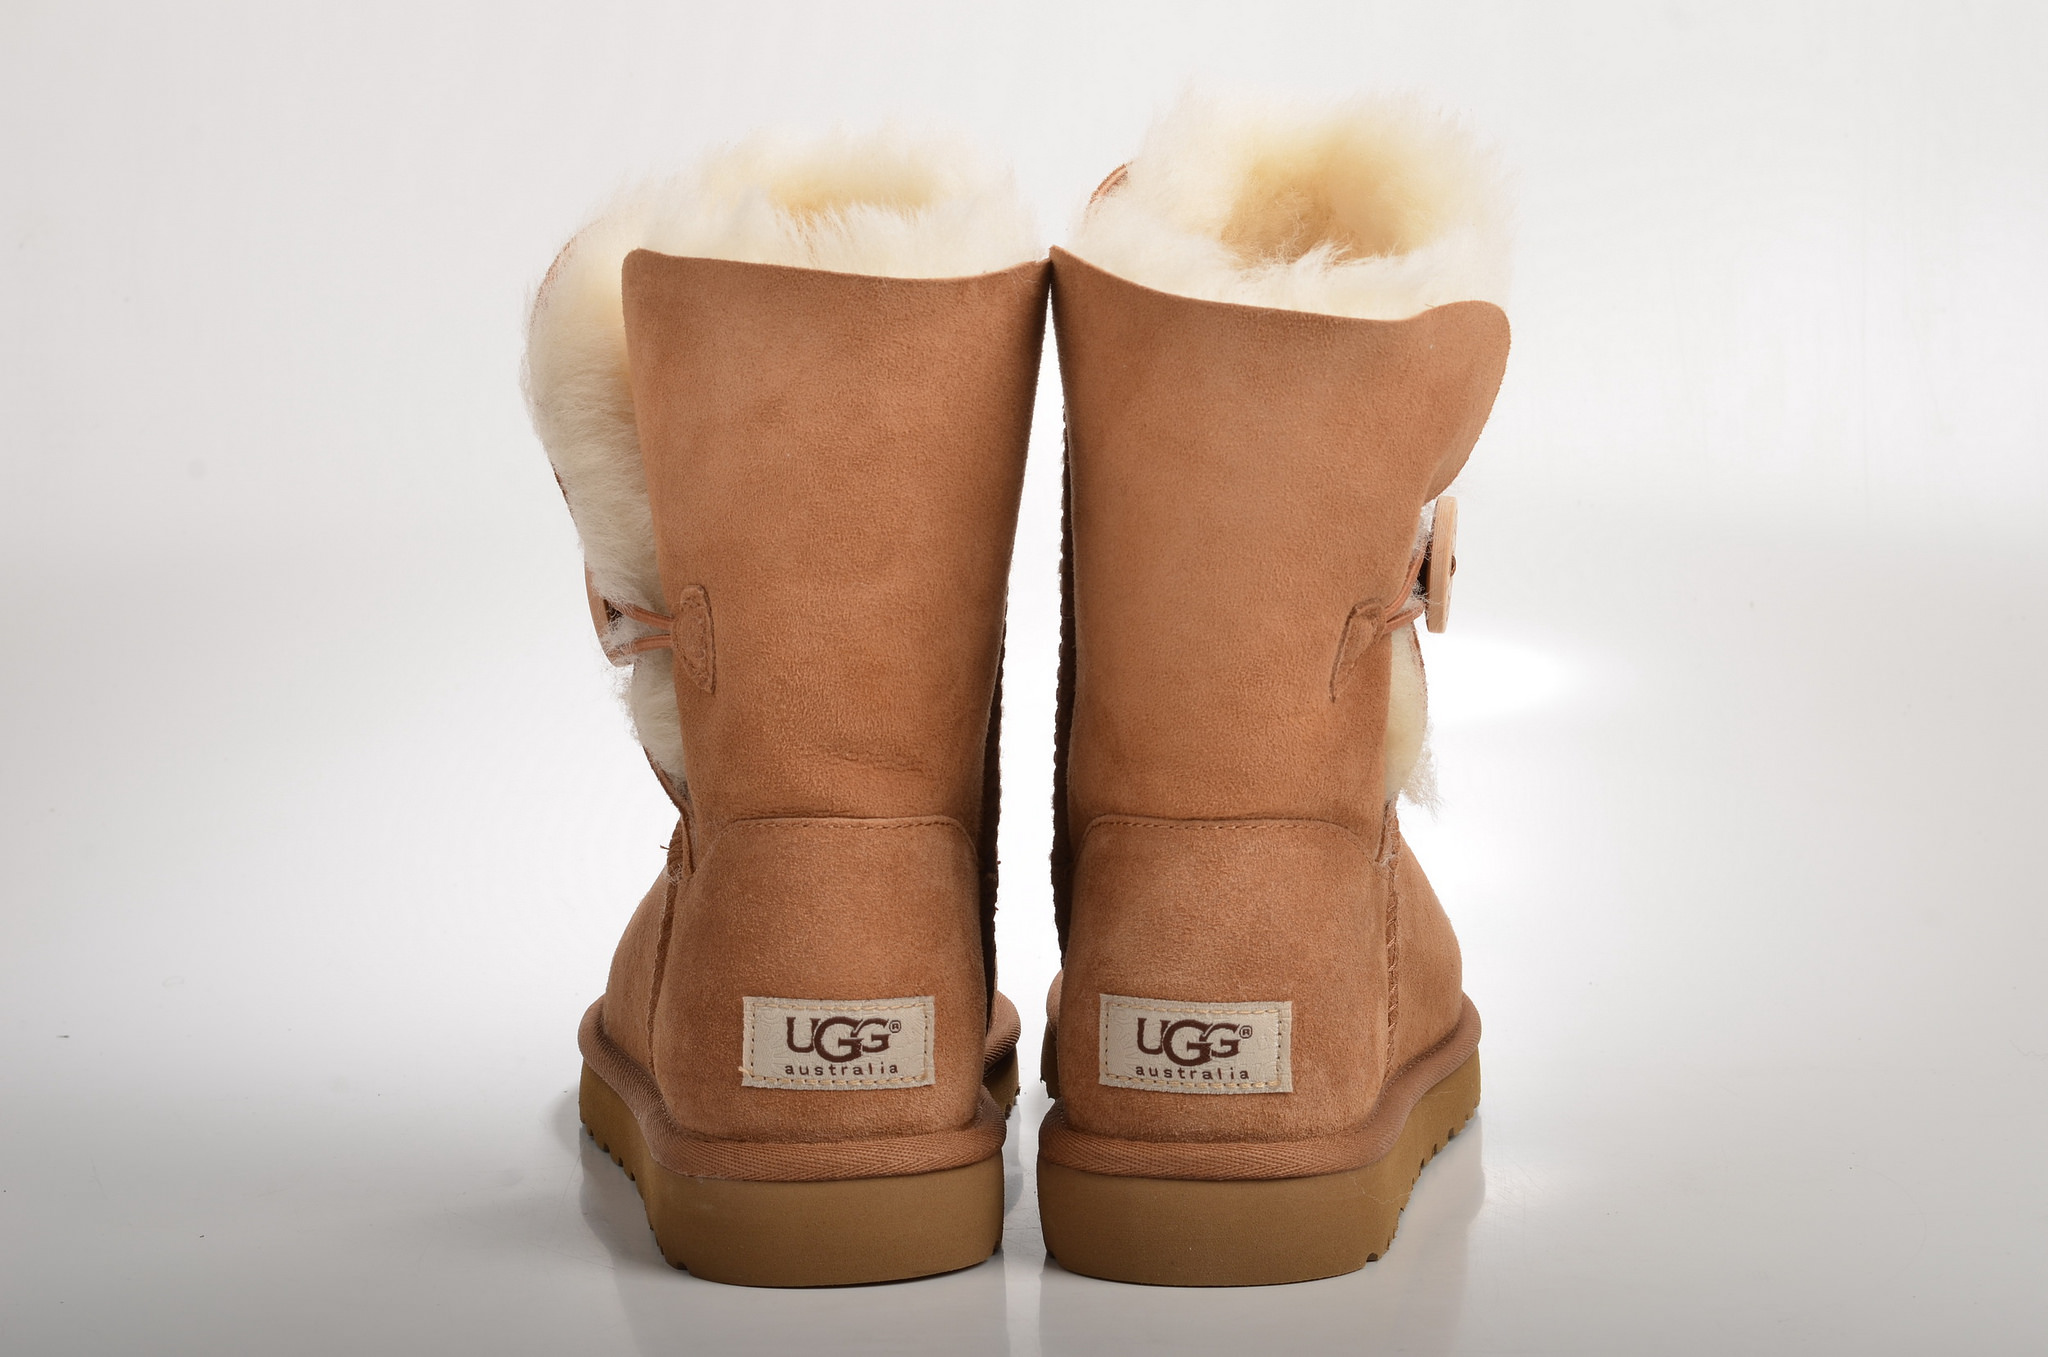 9779b64d67 Celebrating One Of Australia's Biggest Exports, The Ugg Boot